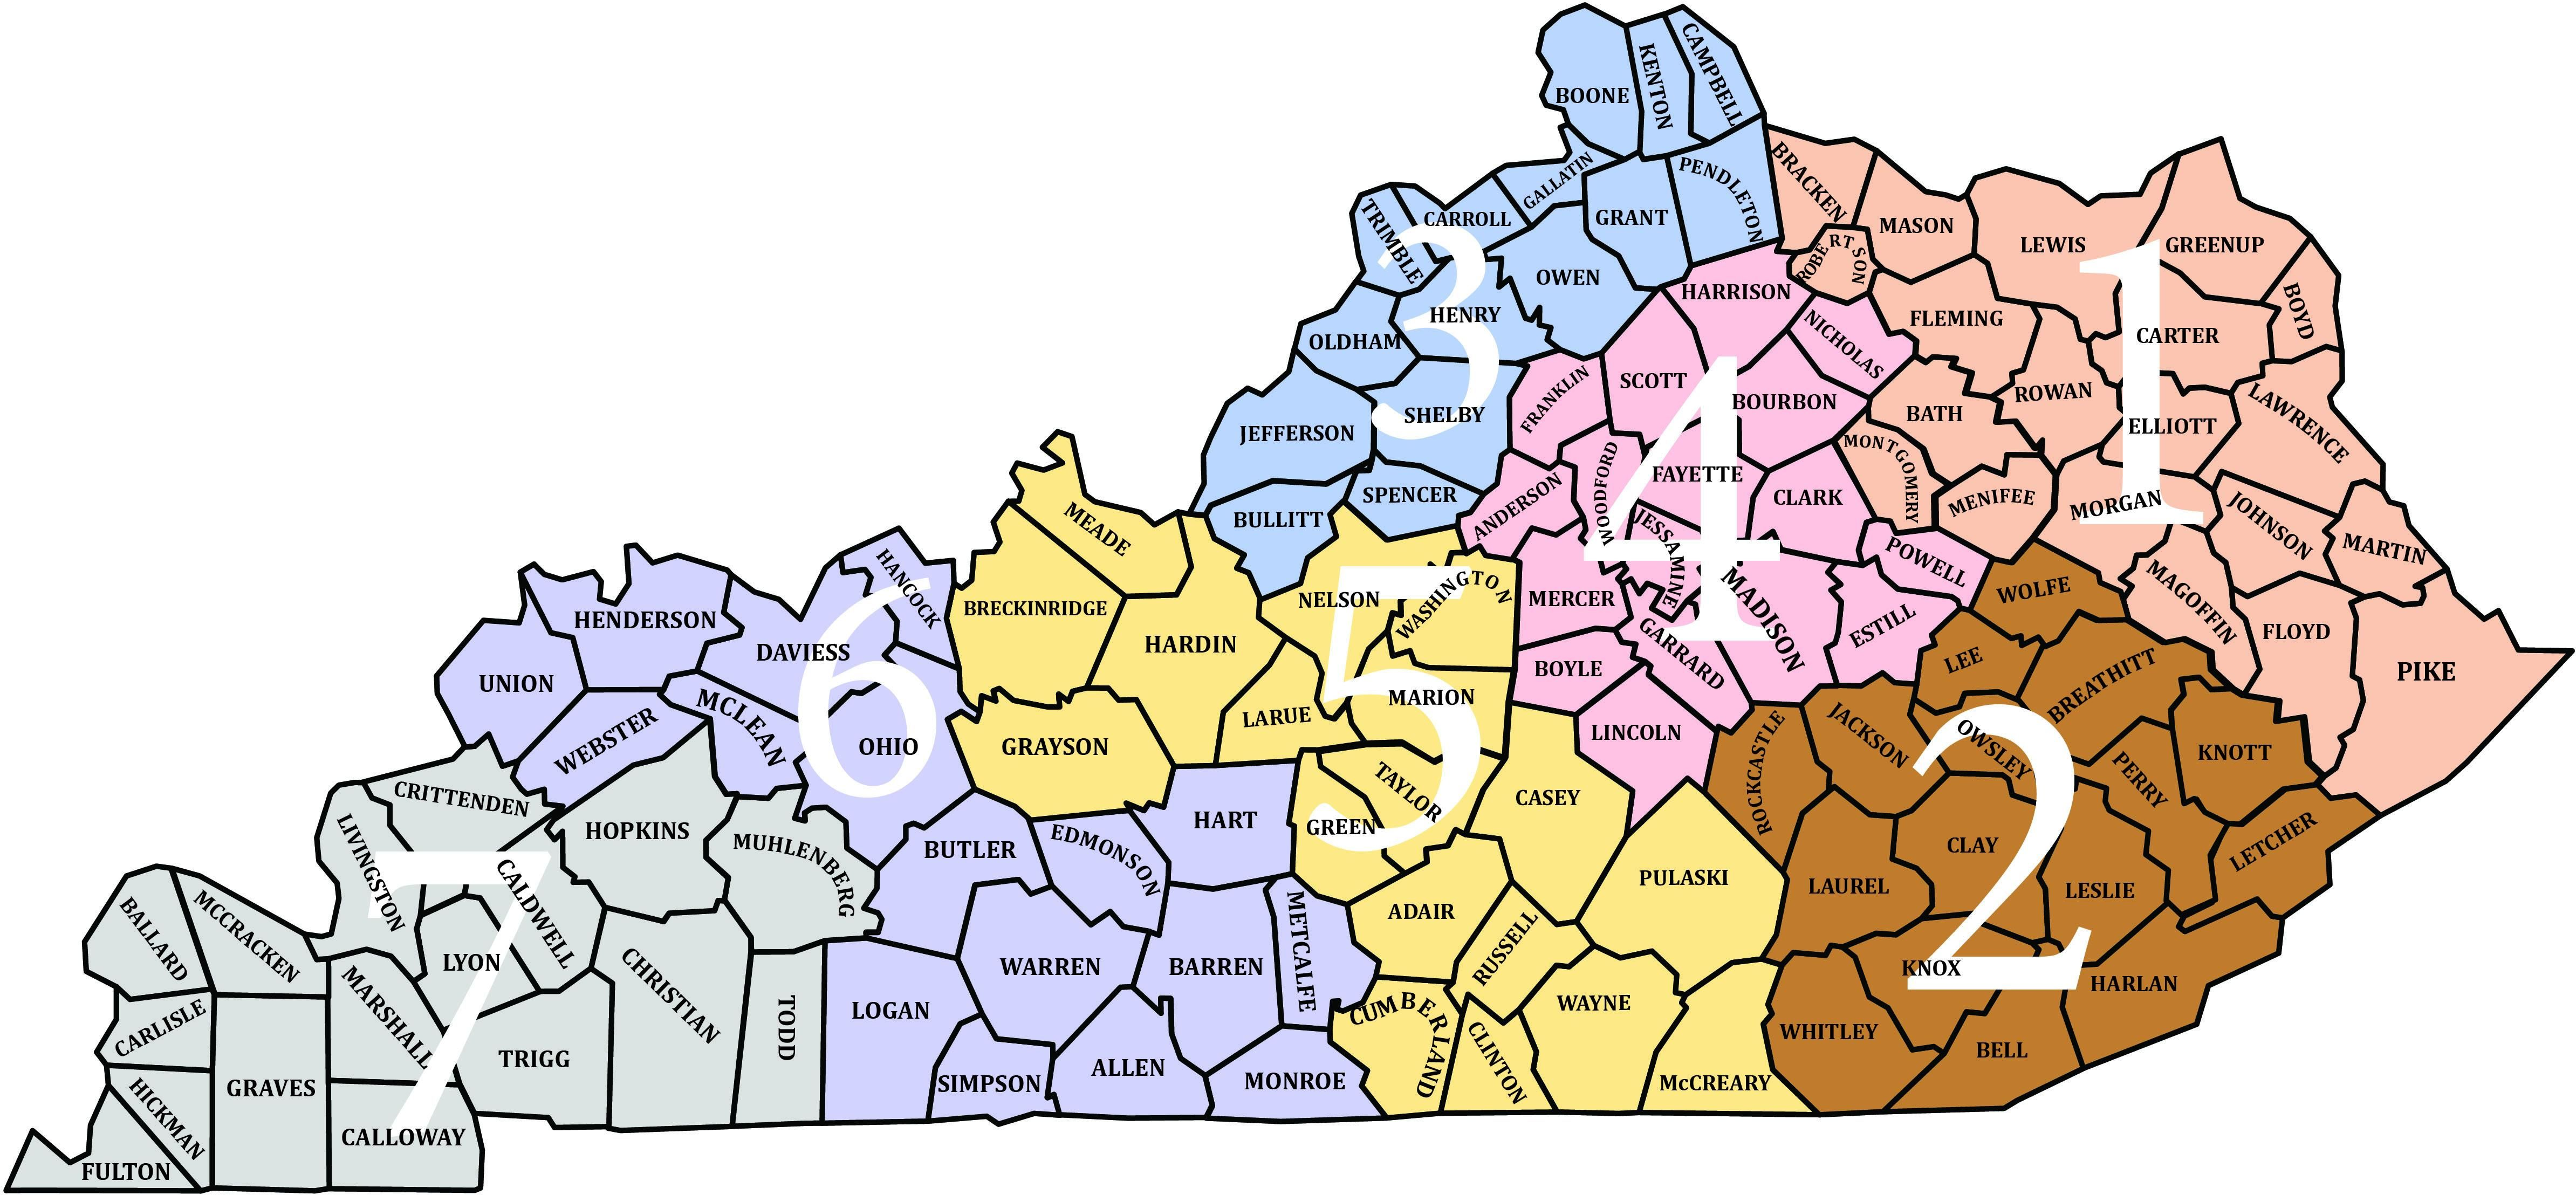 State Map of Counties and Districts in 2019 | State map, Map ...